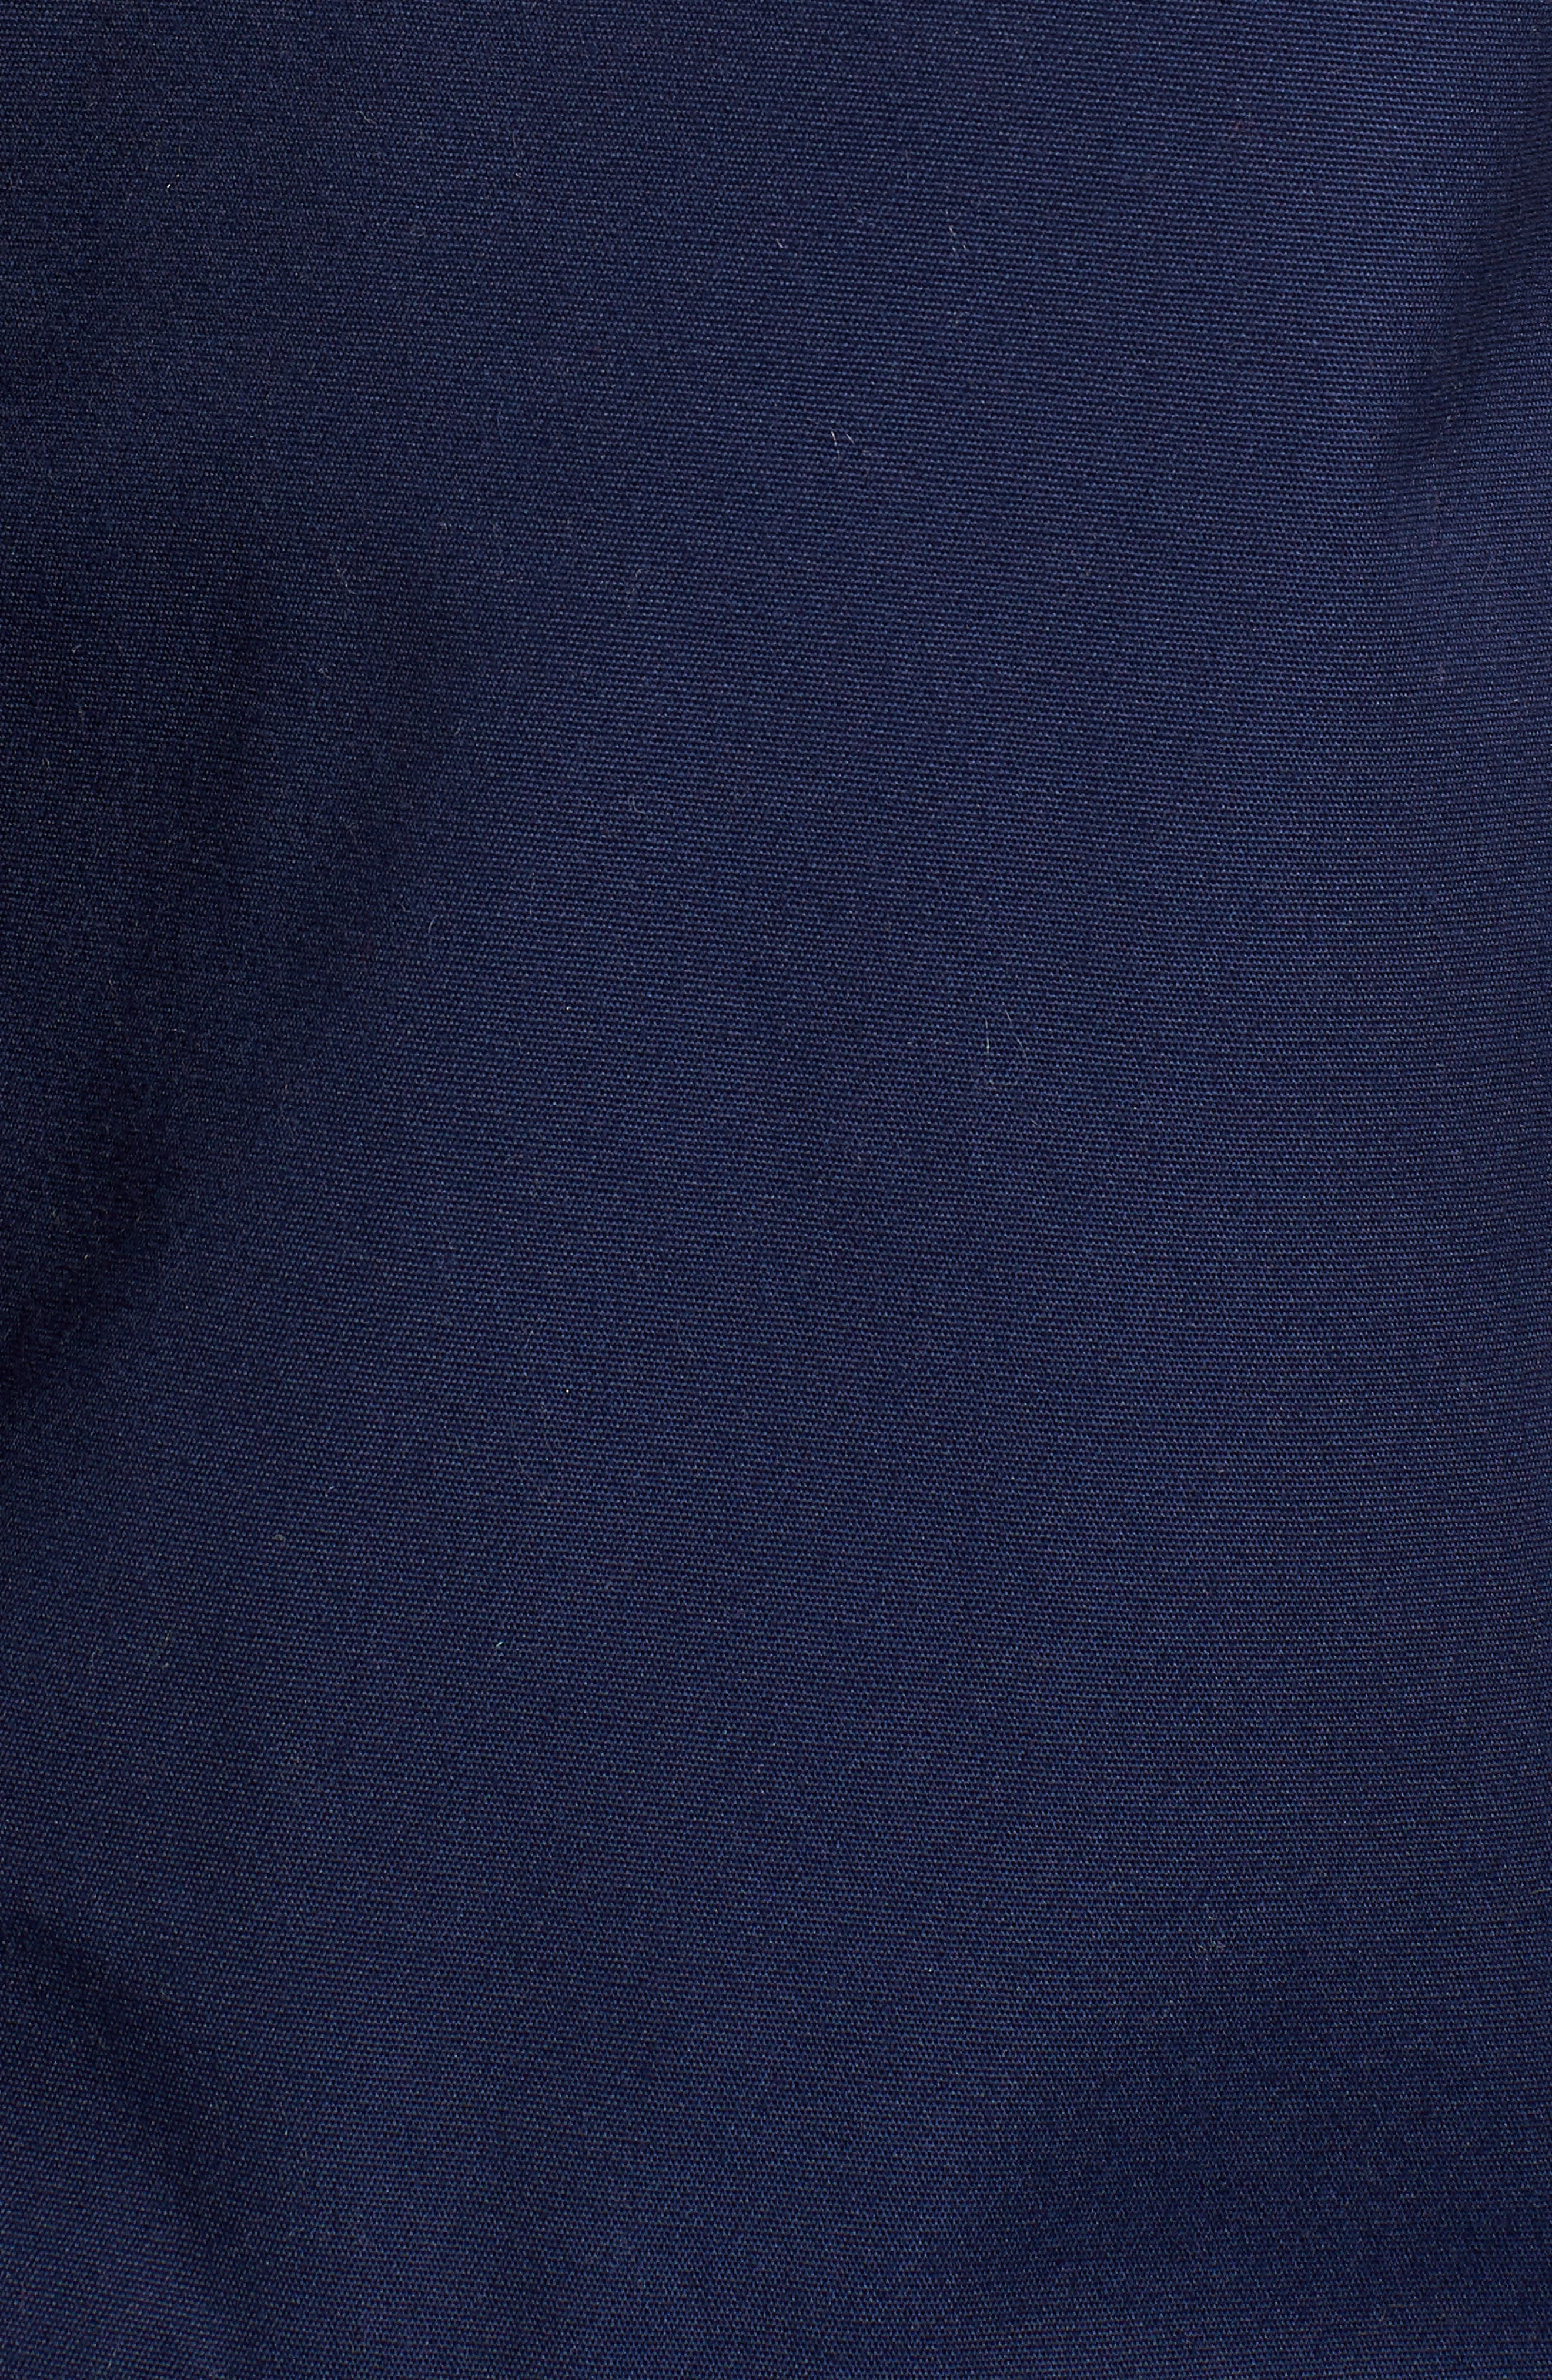 Right as Rain Waterproof Hooded Jacket,                             Alternate thumbnail 7, color,                             FRENCH NAVY